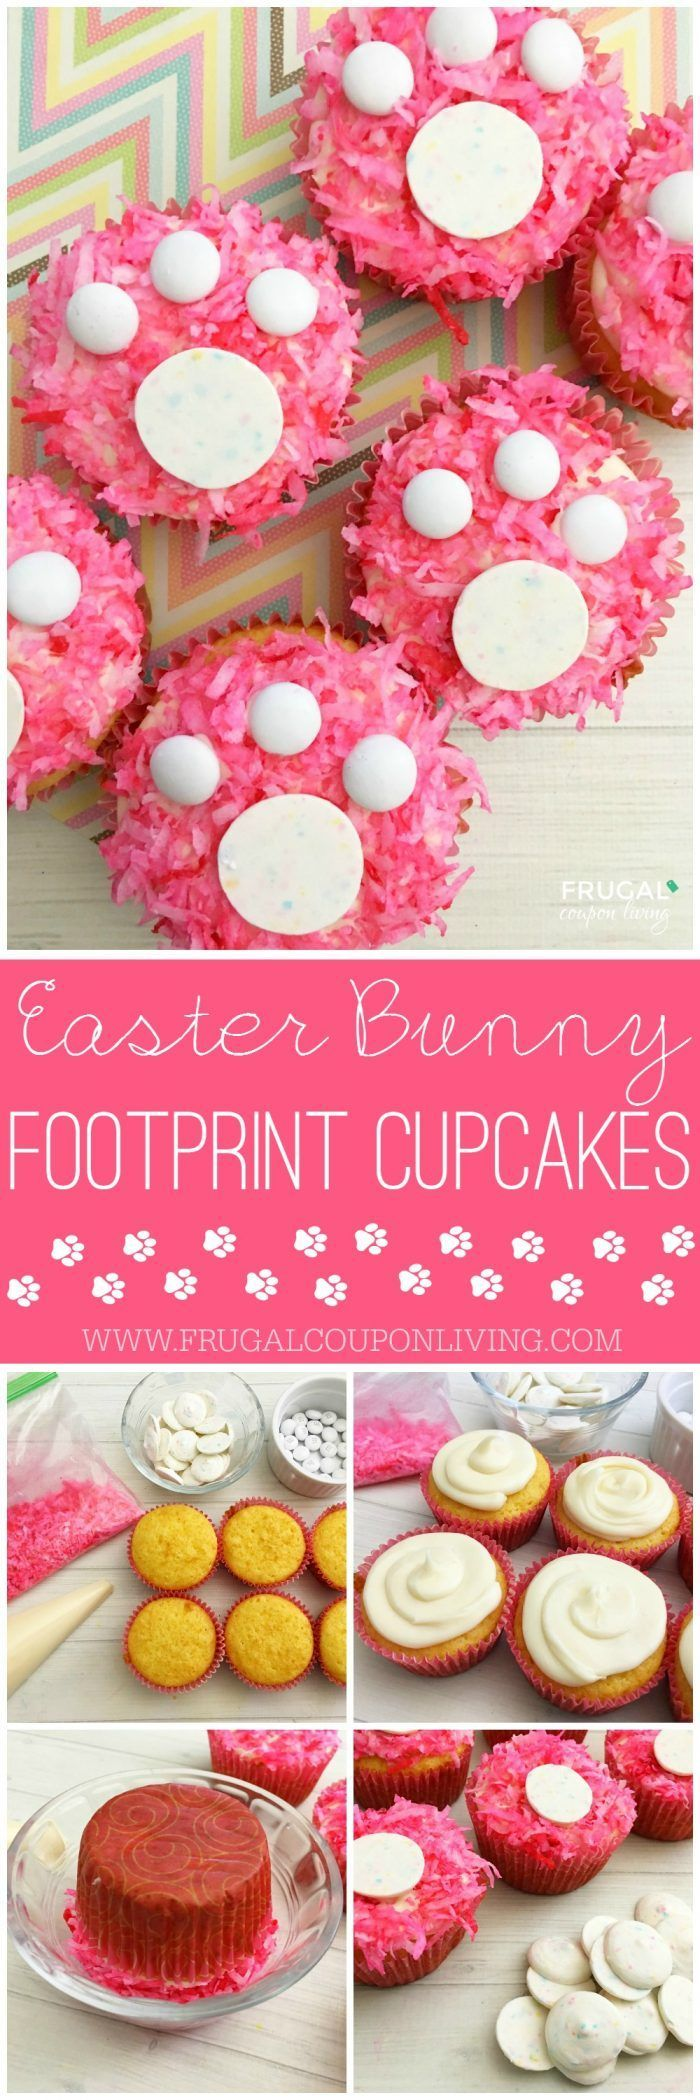 We are quite fond of these Easter Cupcakes. Have fun with coconut and chocolate and make the cutest Easter Bunny Footprint Cupcakes. Details on Frugal Coupon Living.